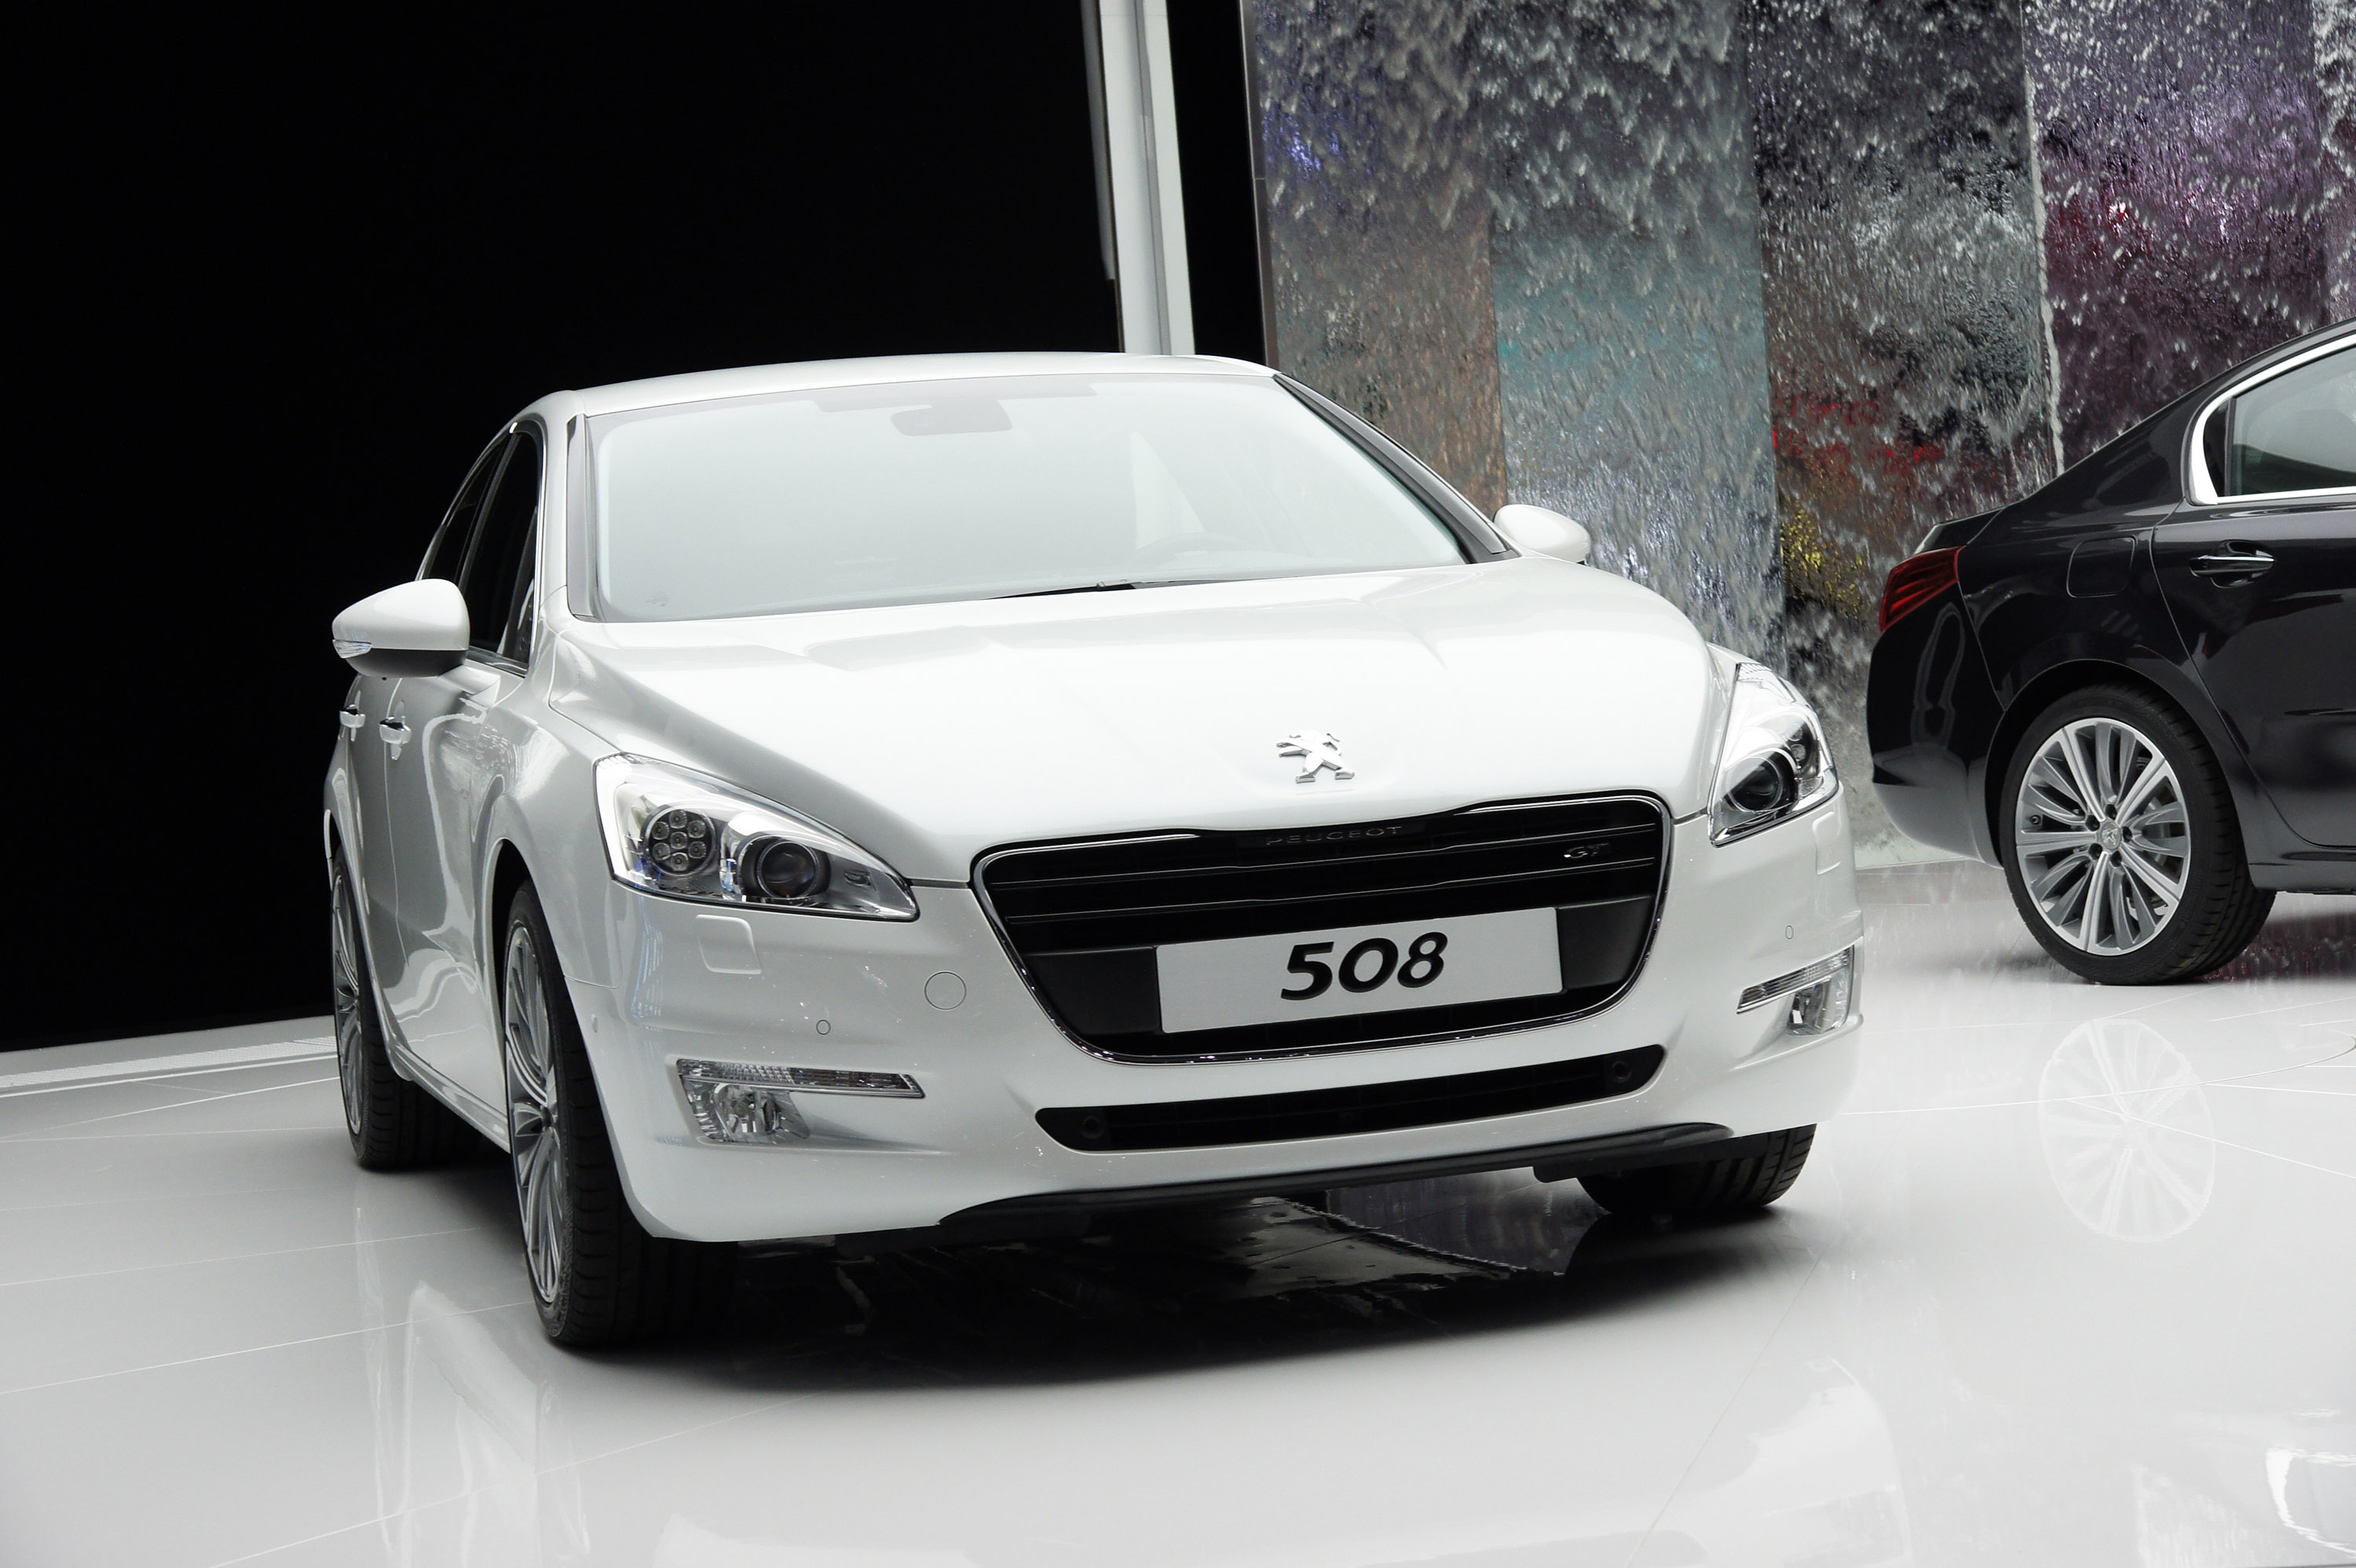 Peugeot 508 Paris 2010 - Picture 43304